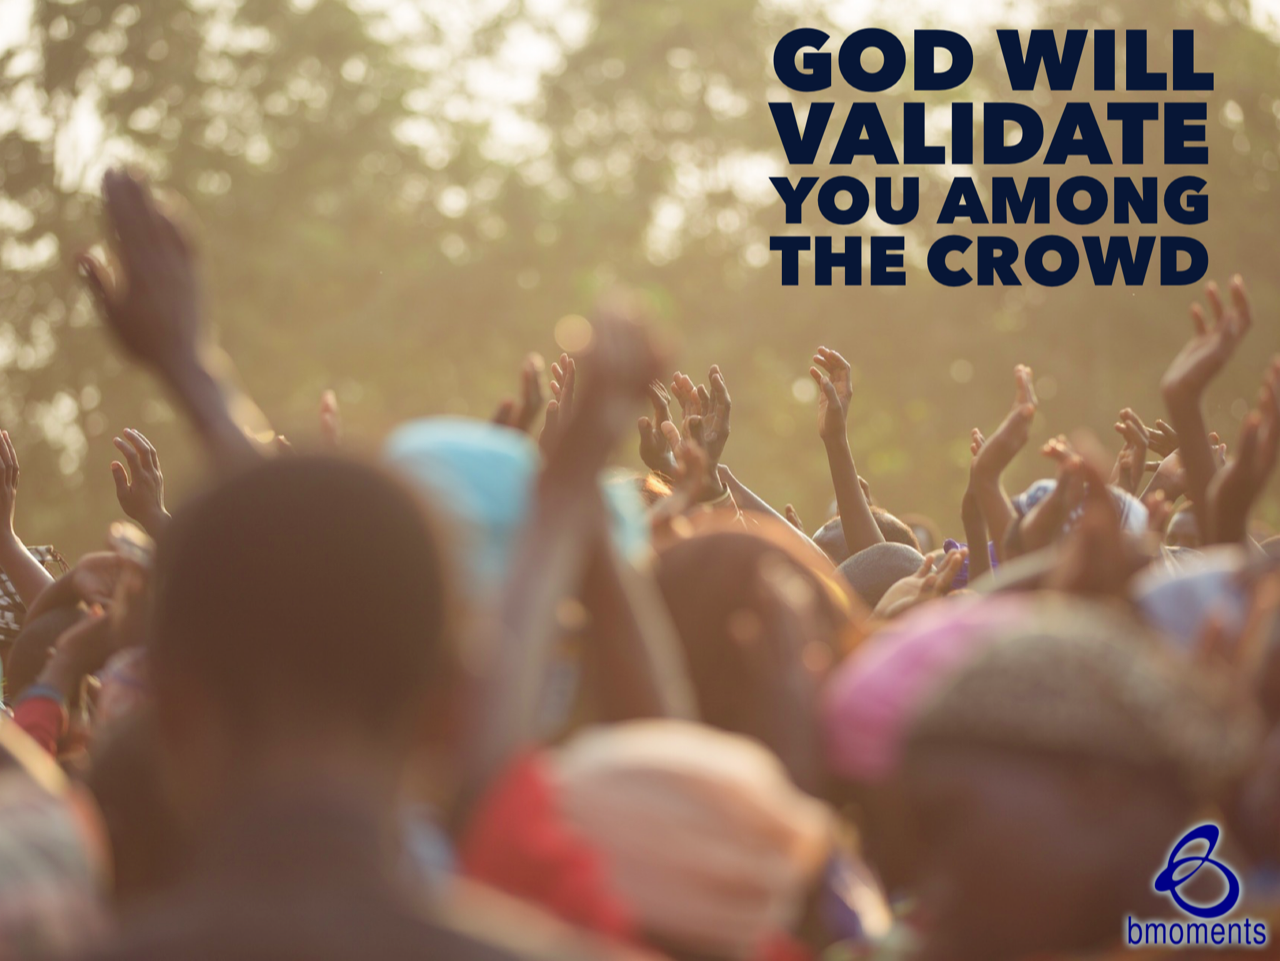 God Will Validate You Among the Crowd